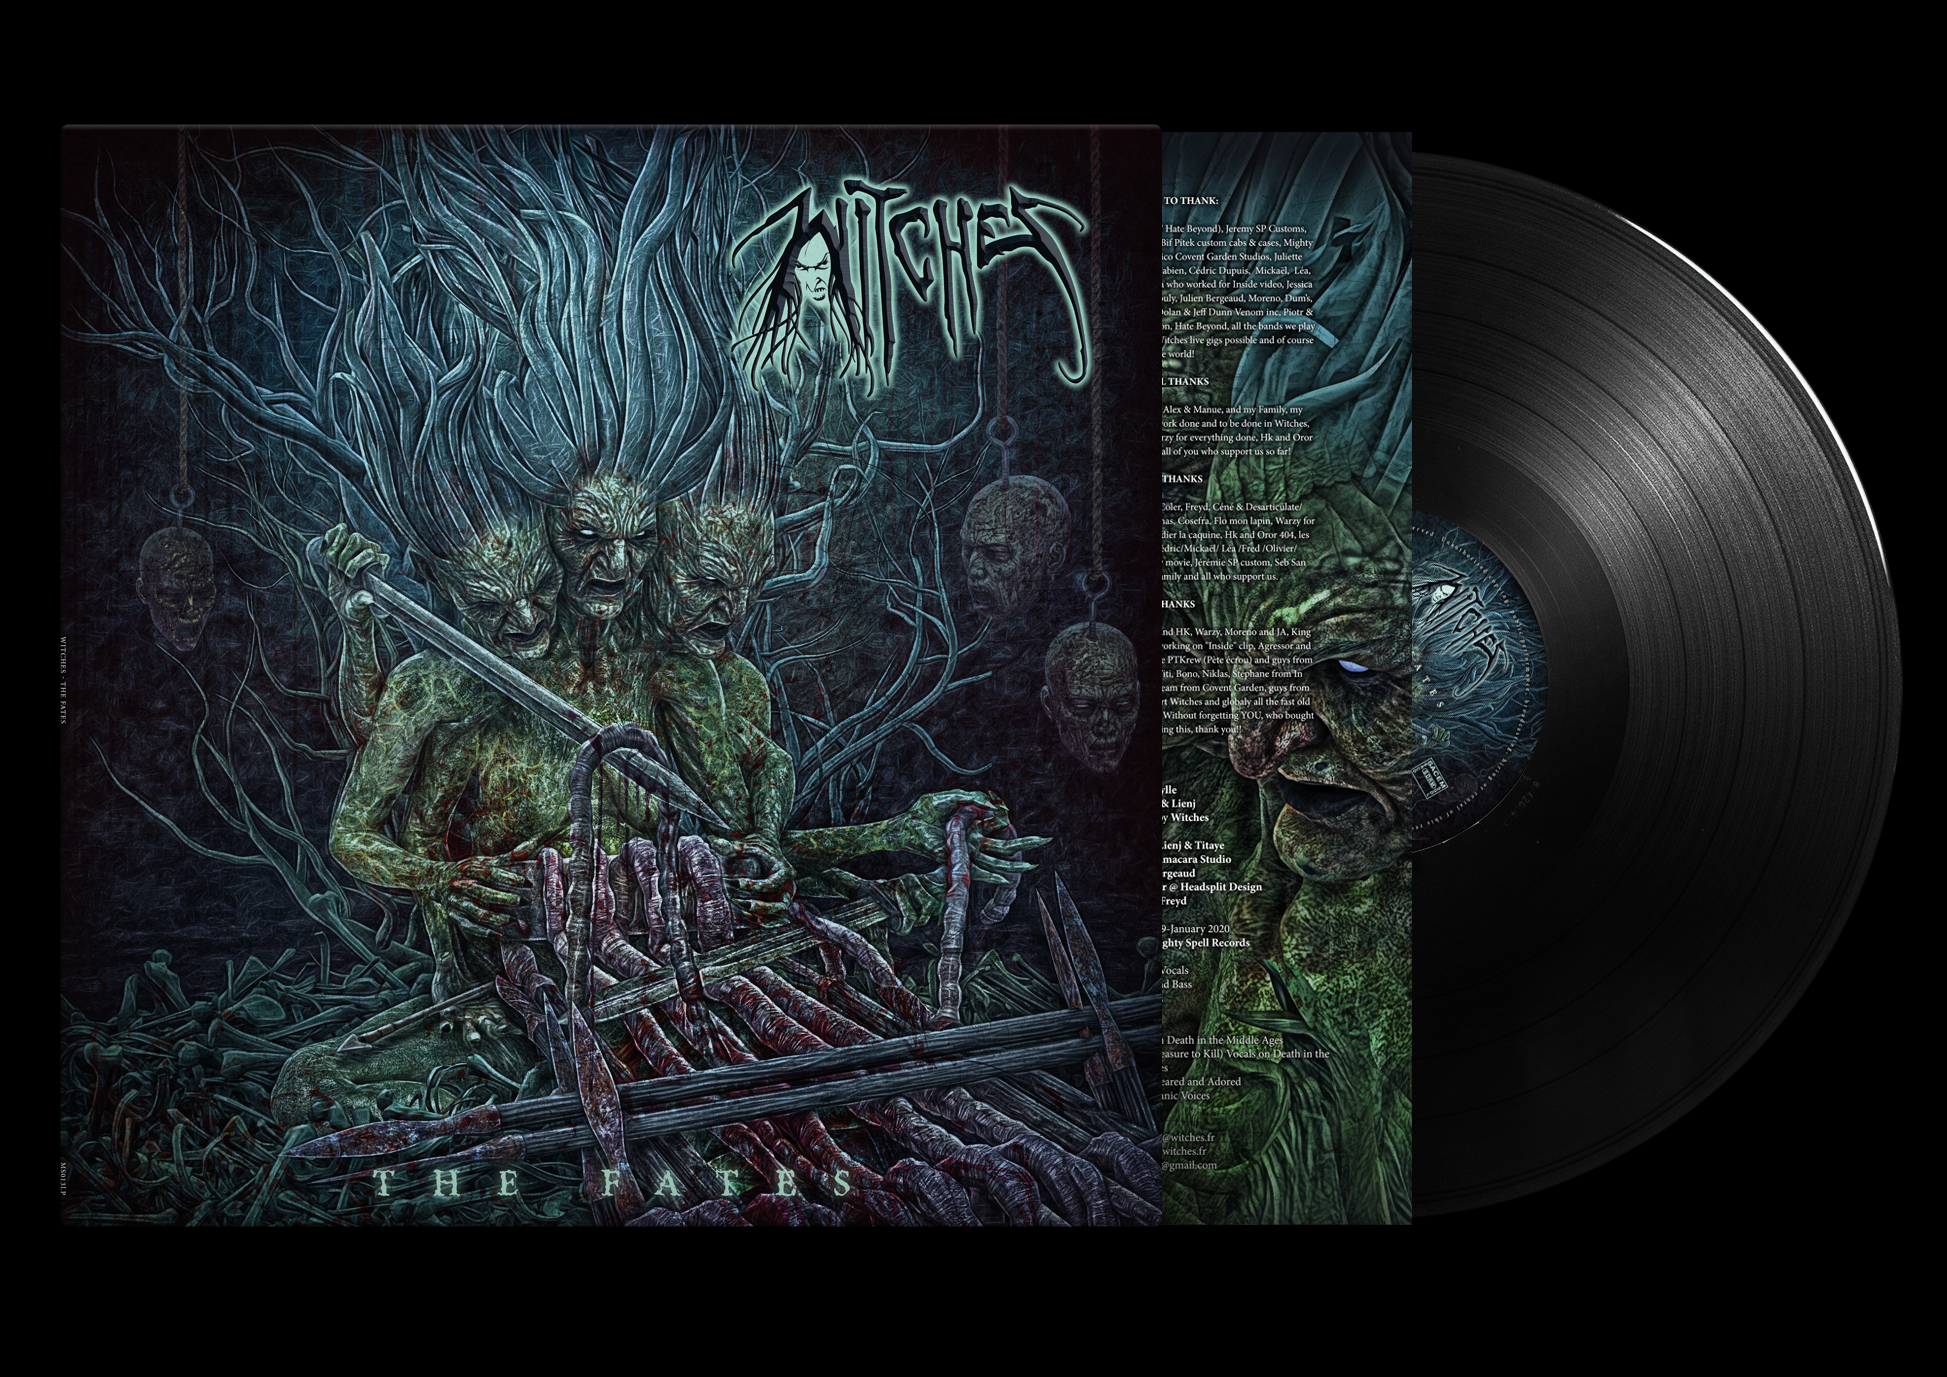 Witches The Fates Vinyl